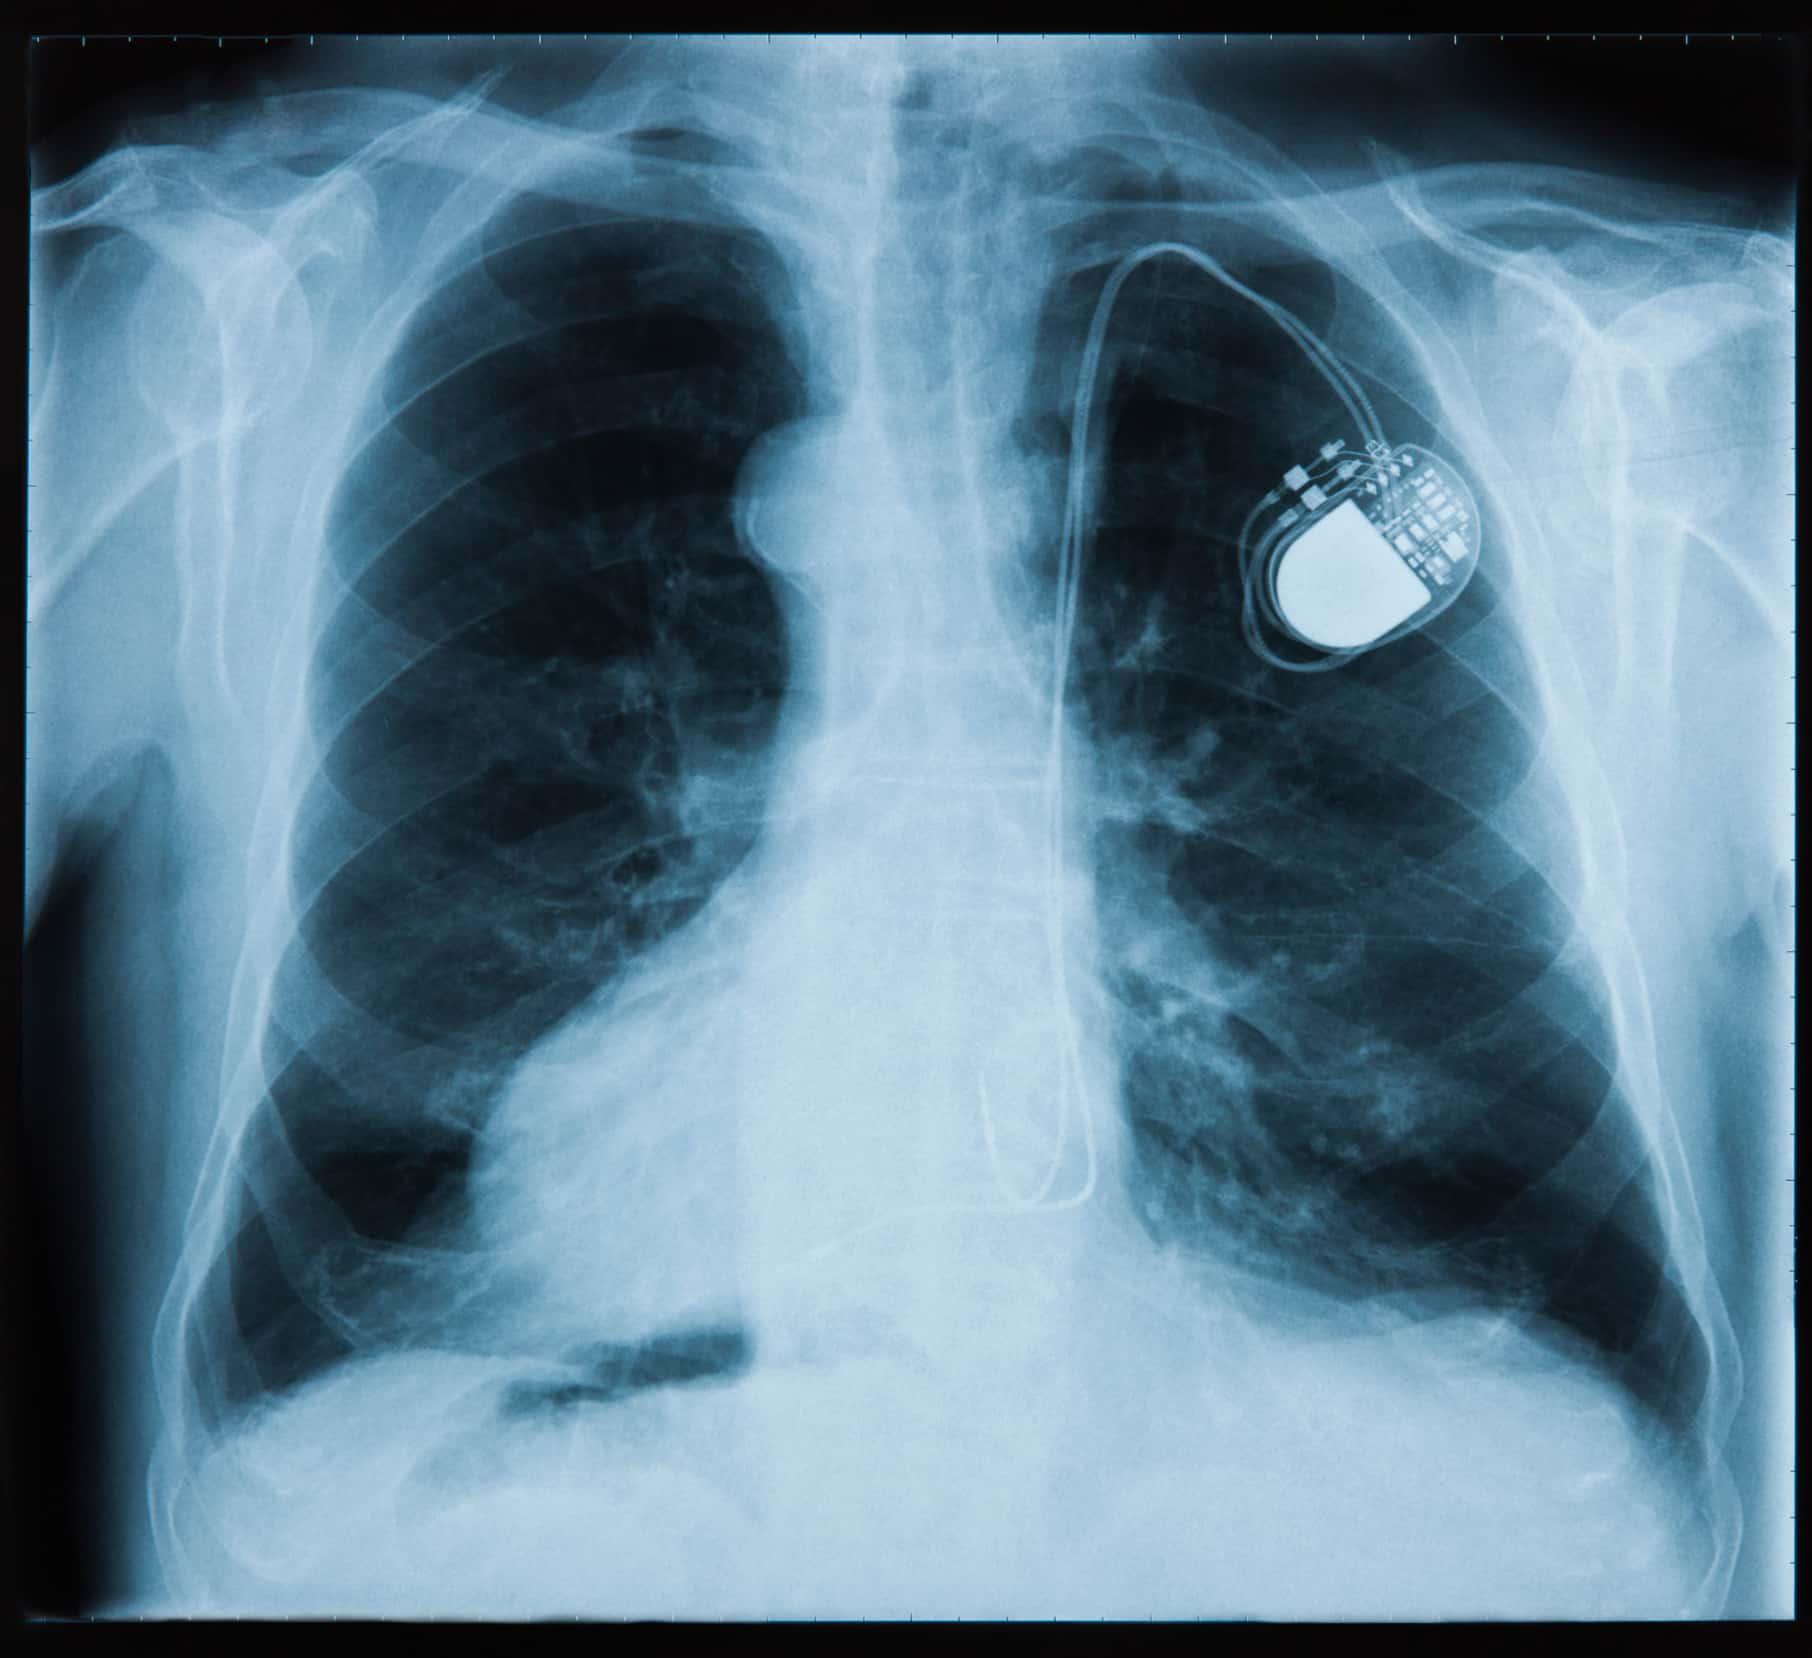 Most pacemakers contain at least two platinum-iridium electrodes.